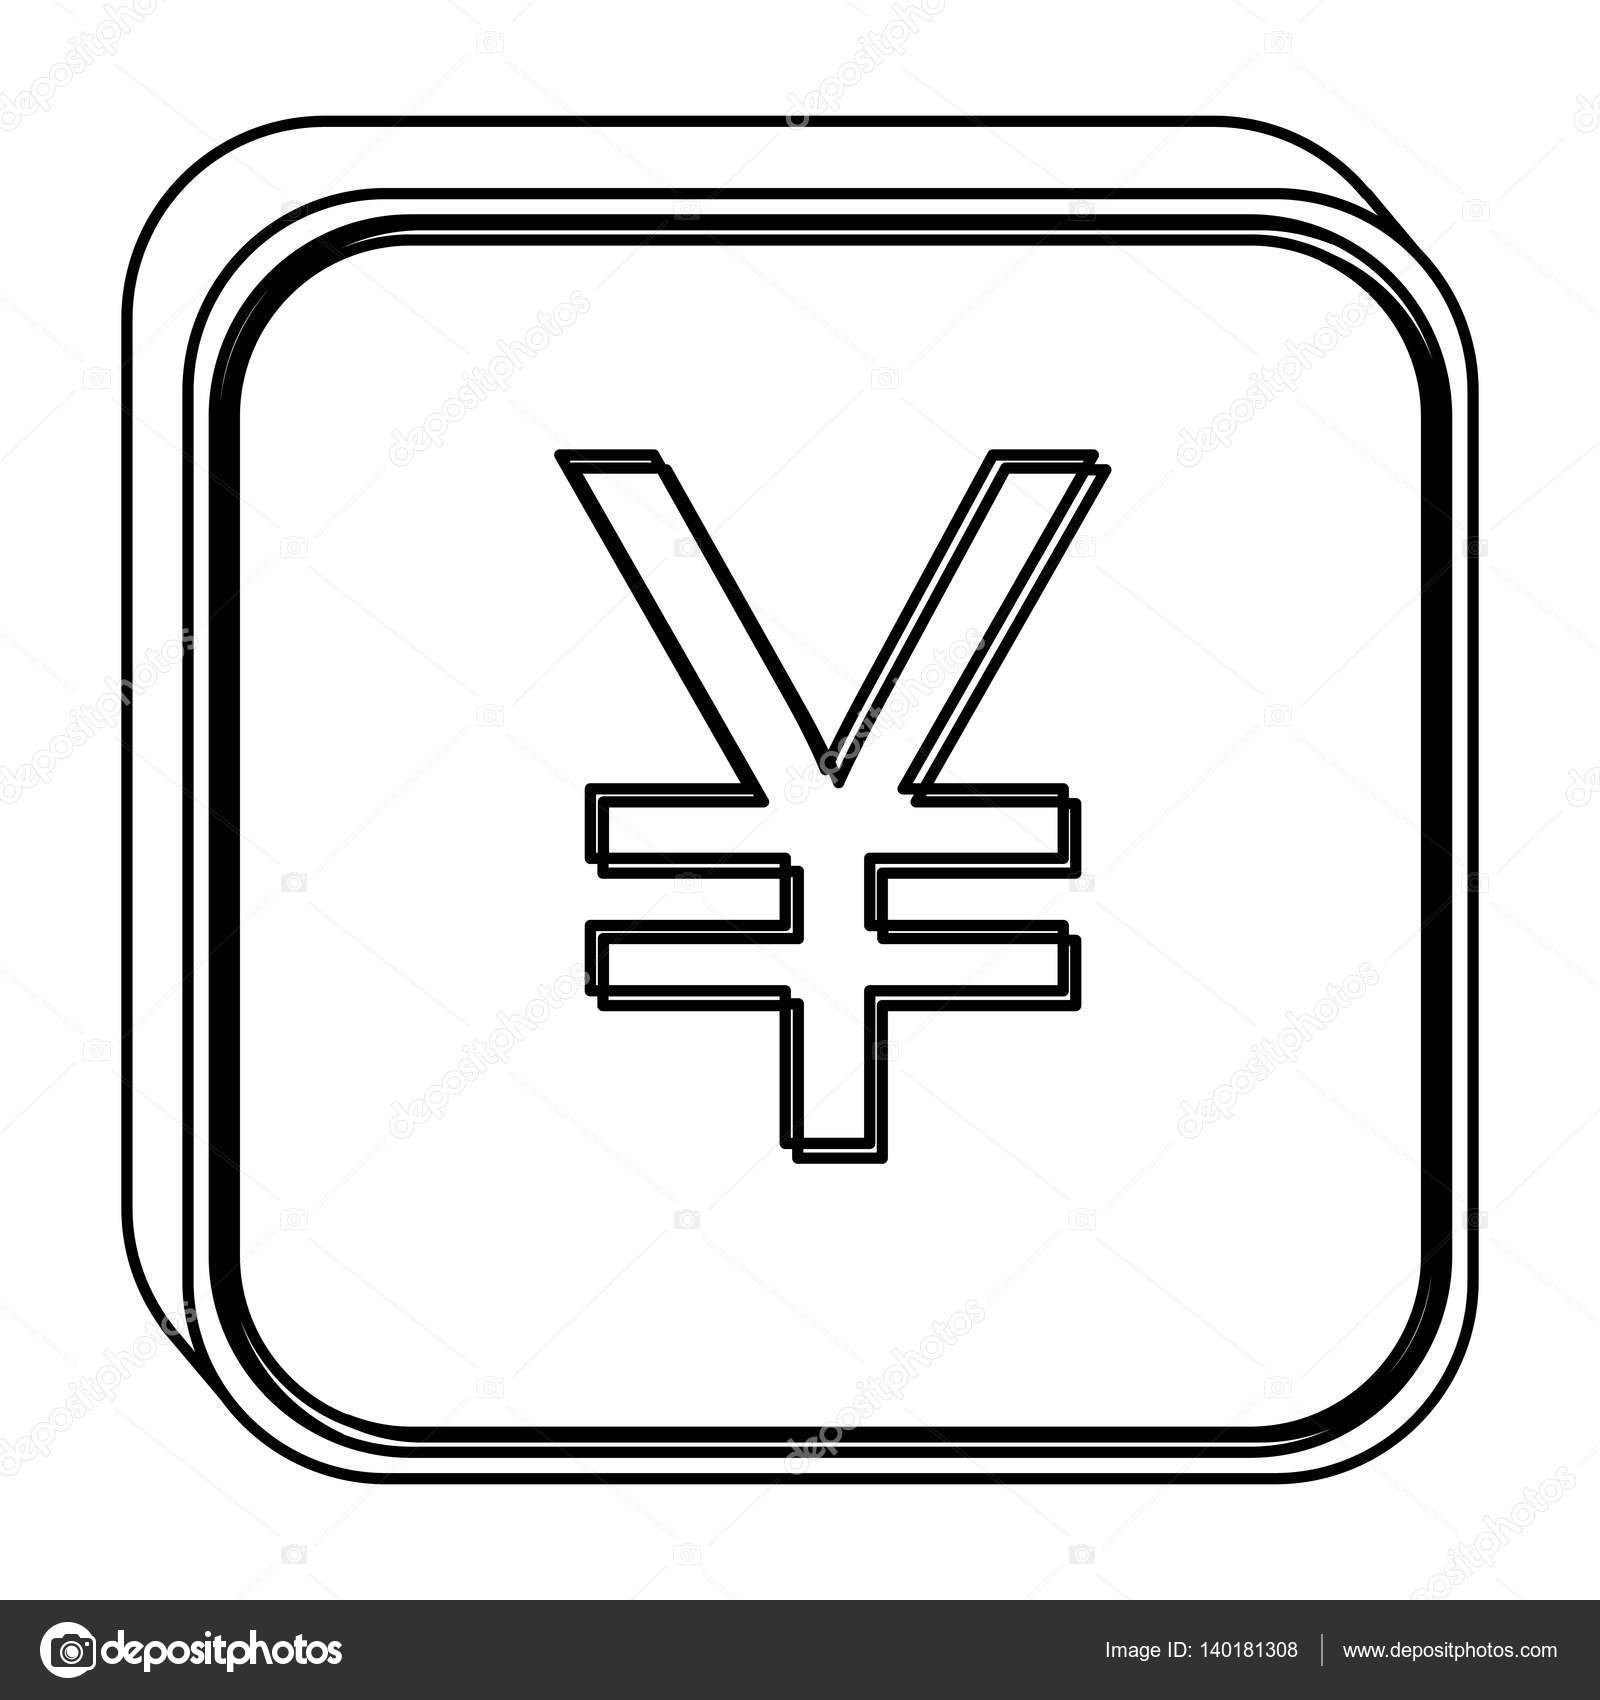 Monochrome Square Contour With Currency Symbol Of China Stock